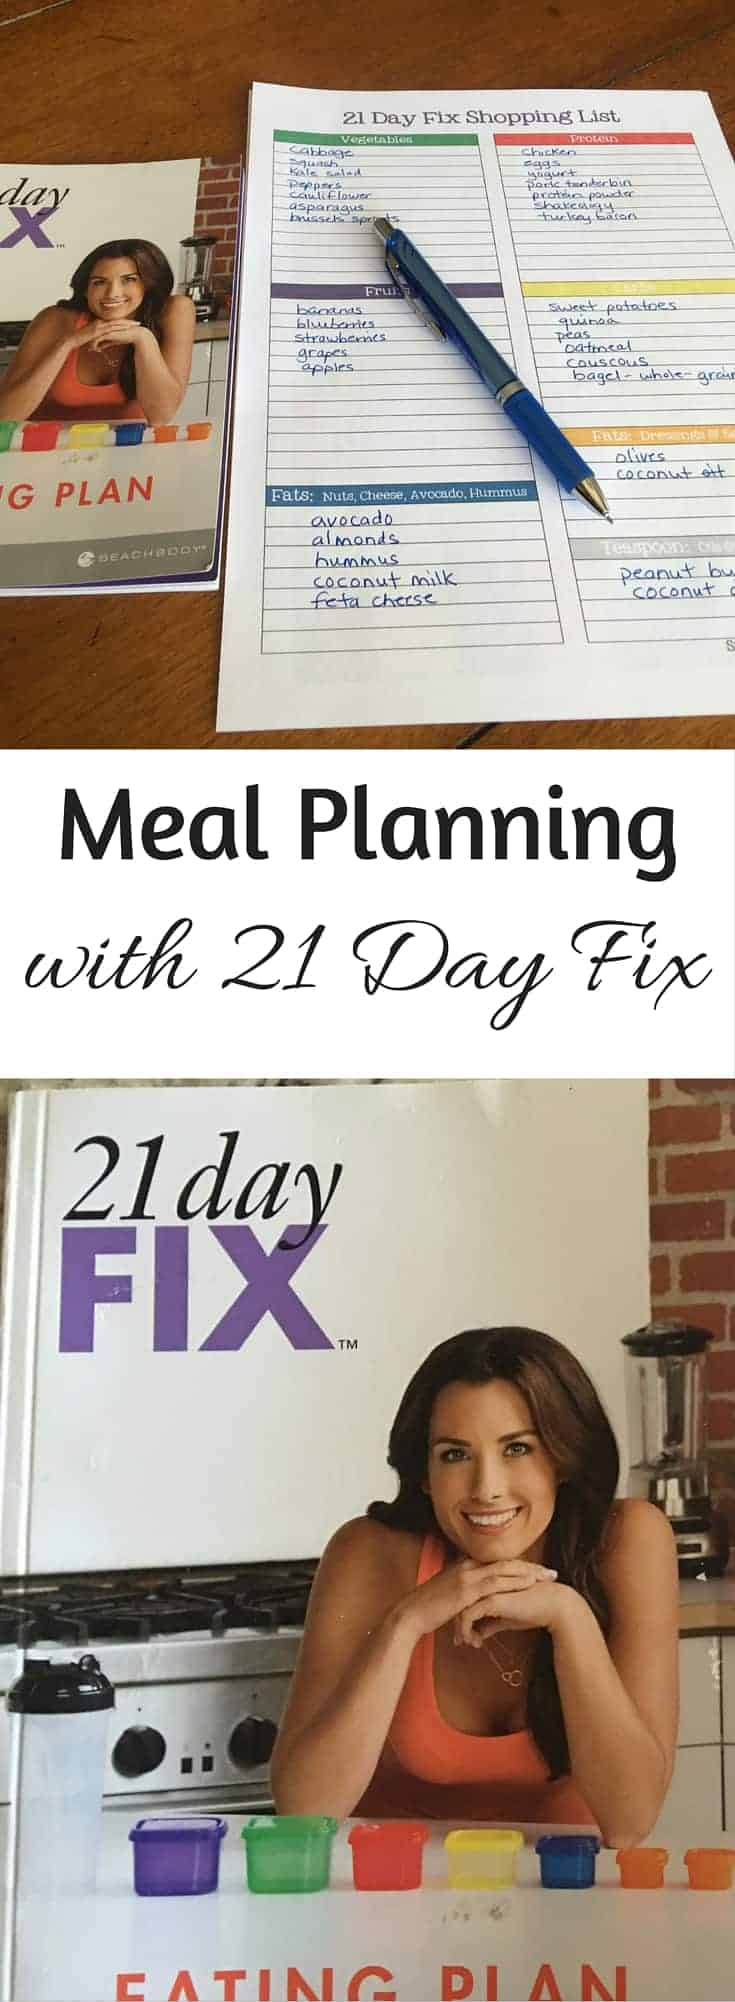 Healthy Diet Plan To Lose 20 Pounds In 2 Months